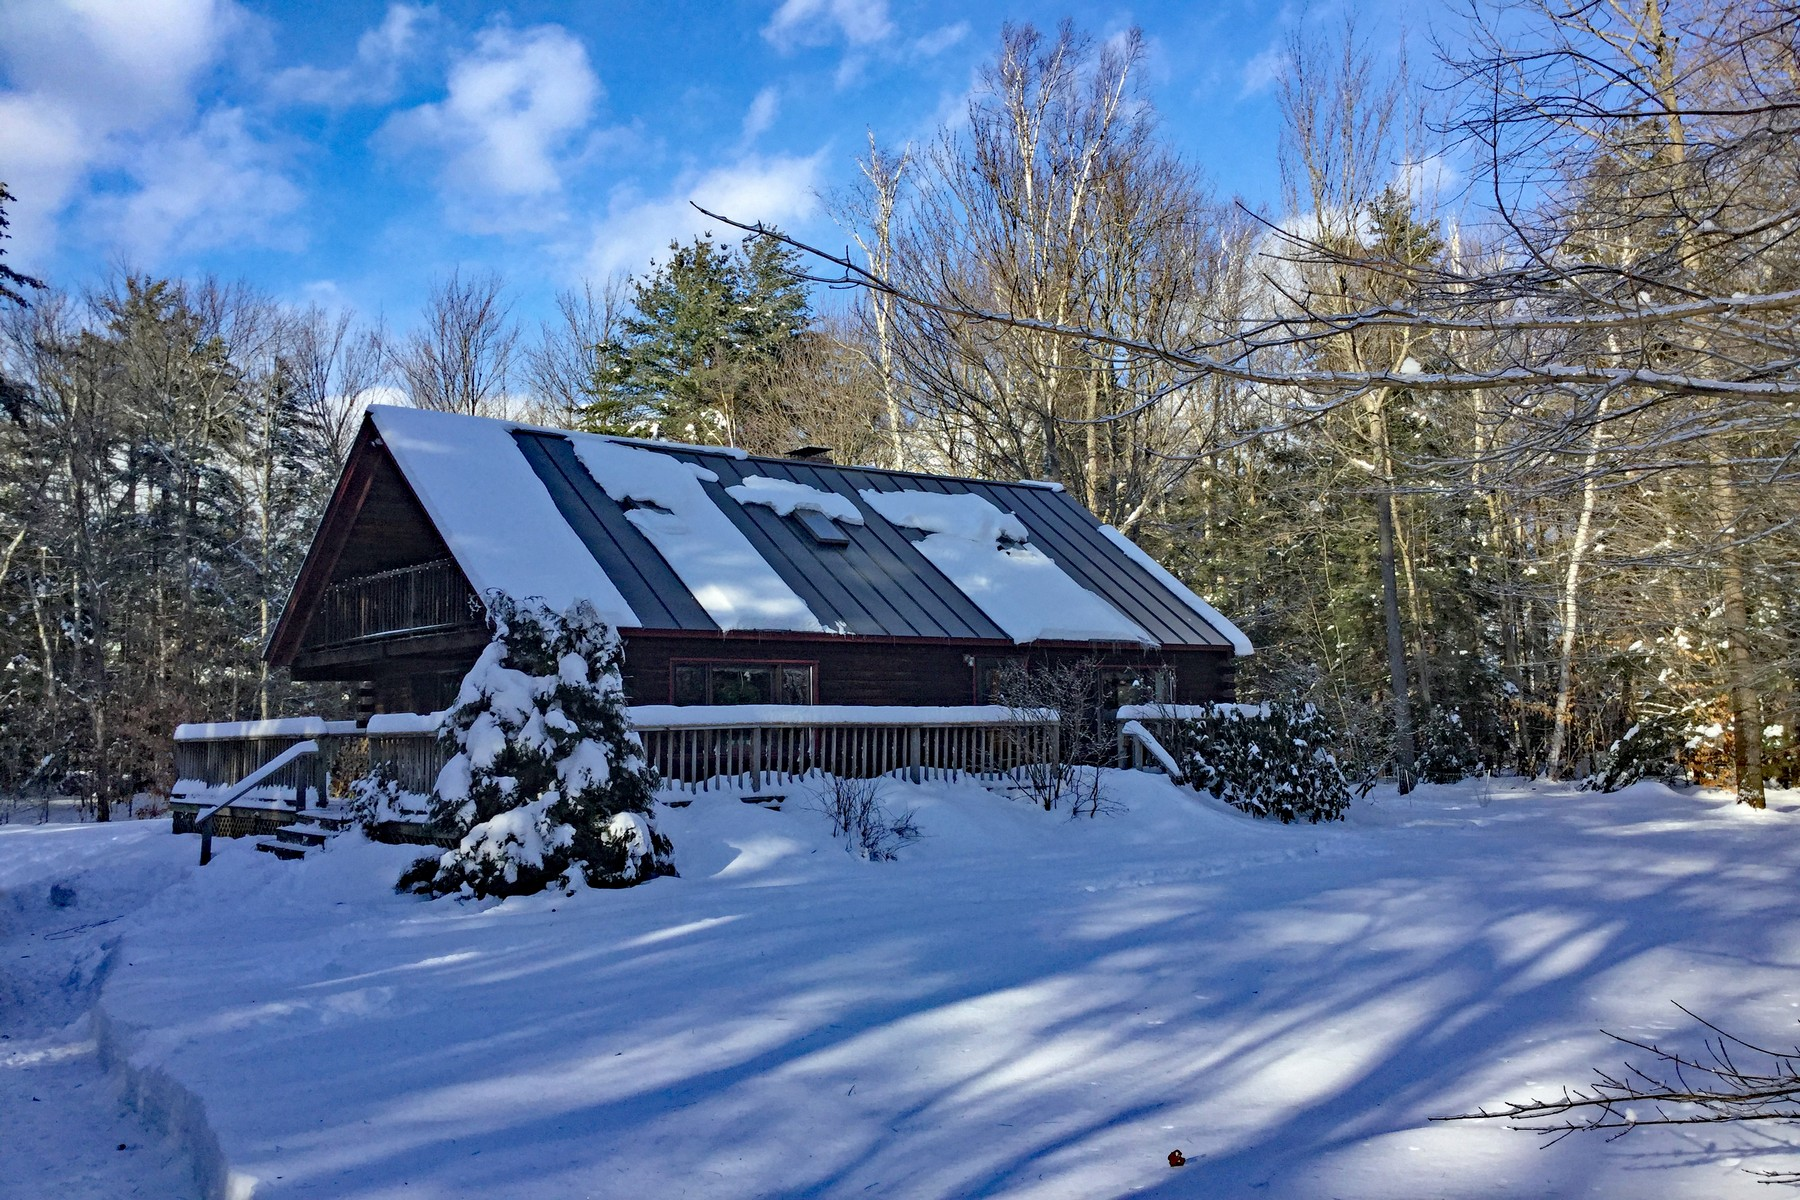 Single Family Home for Sale at Tucked Away Getaway 220 Bugbee, Springfield, Vermont, 05156 United States